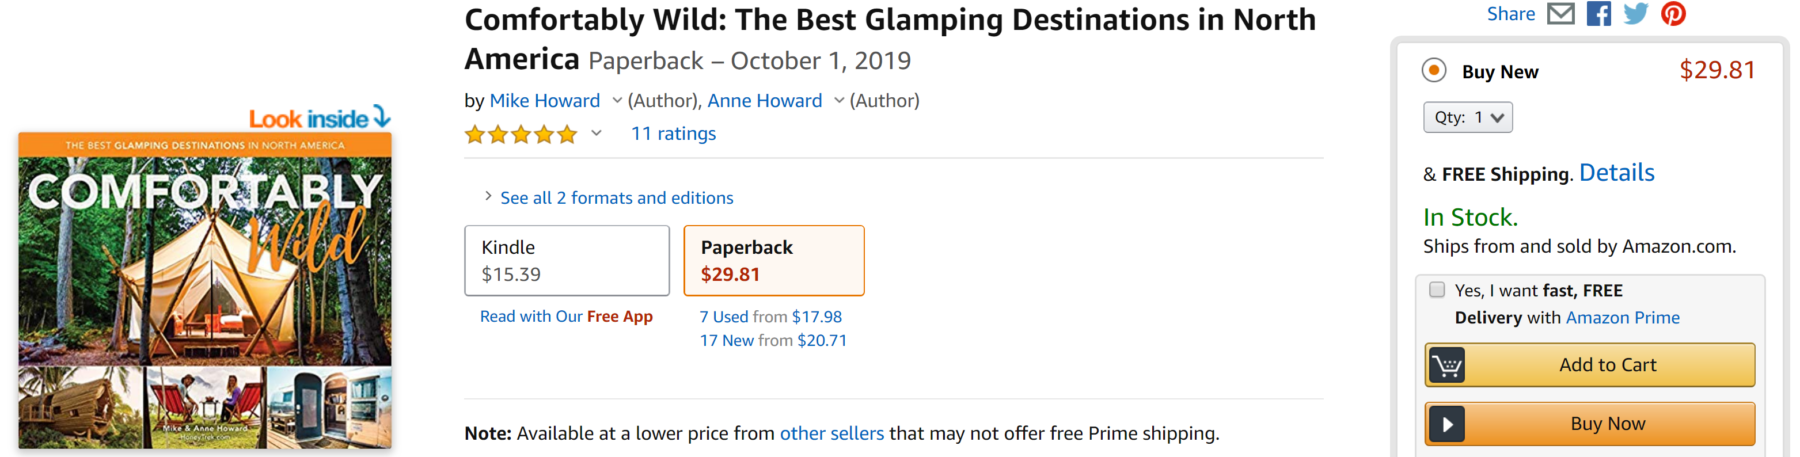 Where to Buy Comfortably Wild Book